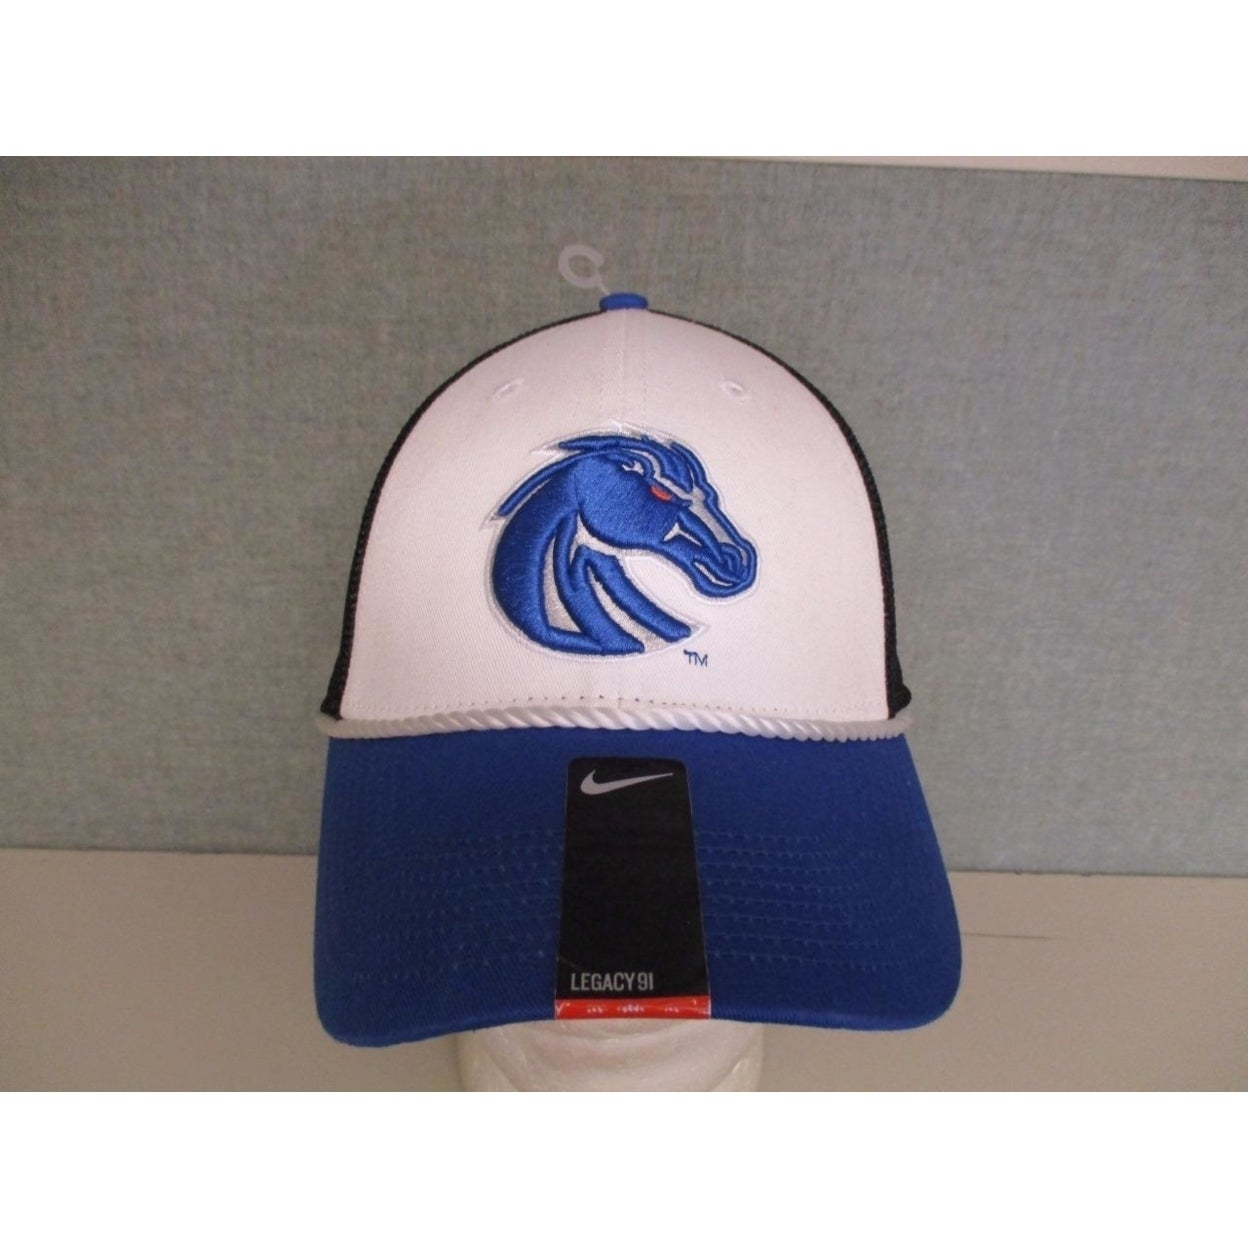 270ebbc3f06 Shop Boise State Broncos Adult Mens Size Osfa Nike Flex Fit Cap Hat - Free  Shipping On Orders Over  45 - Overstock.com - 23075078